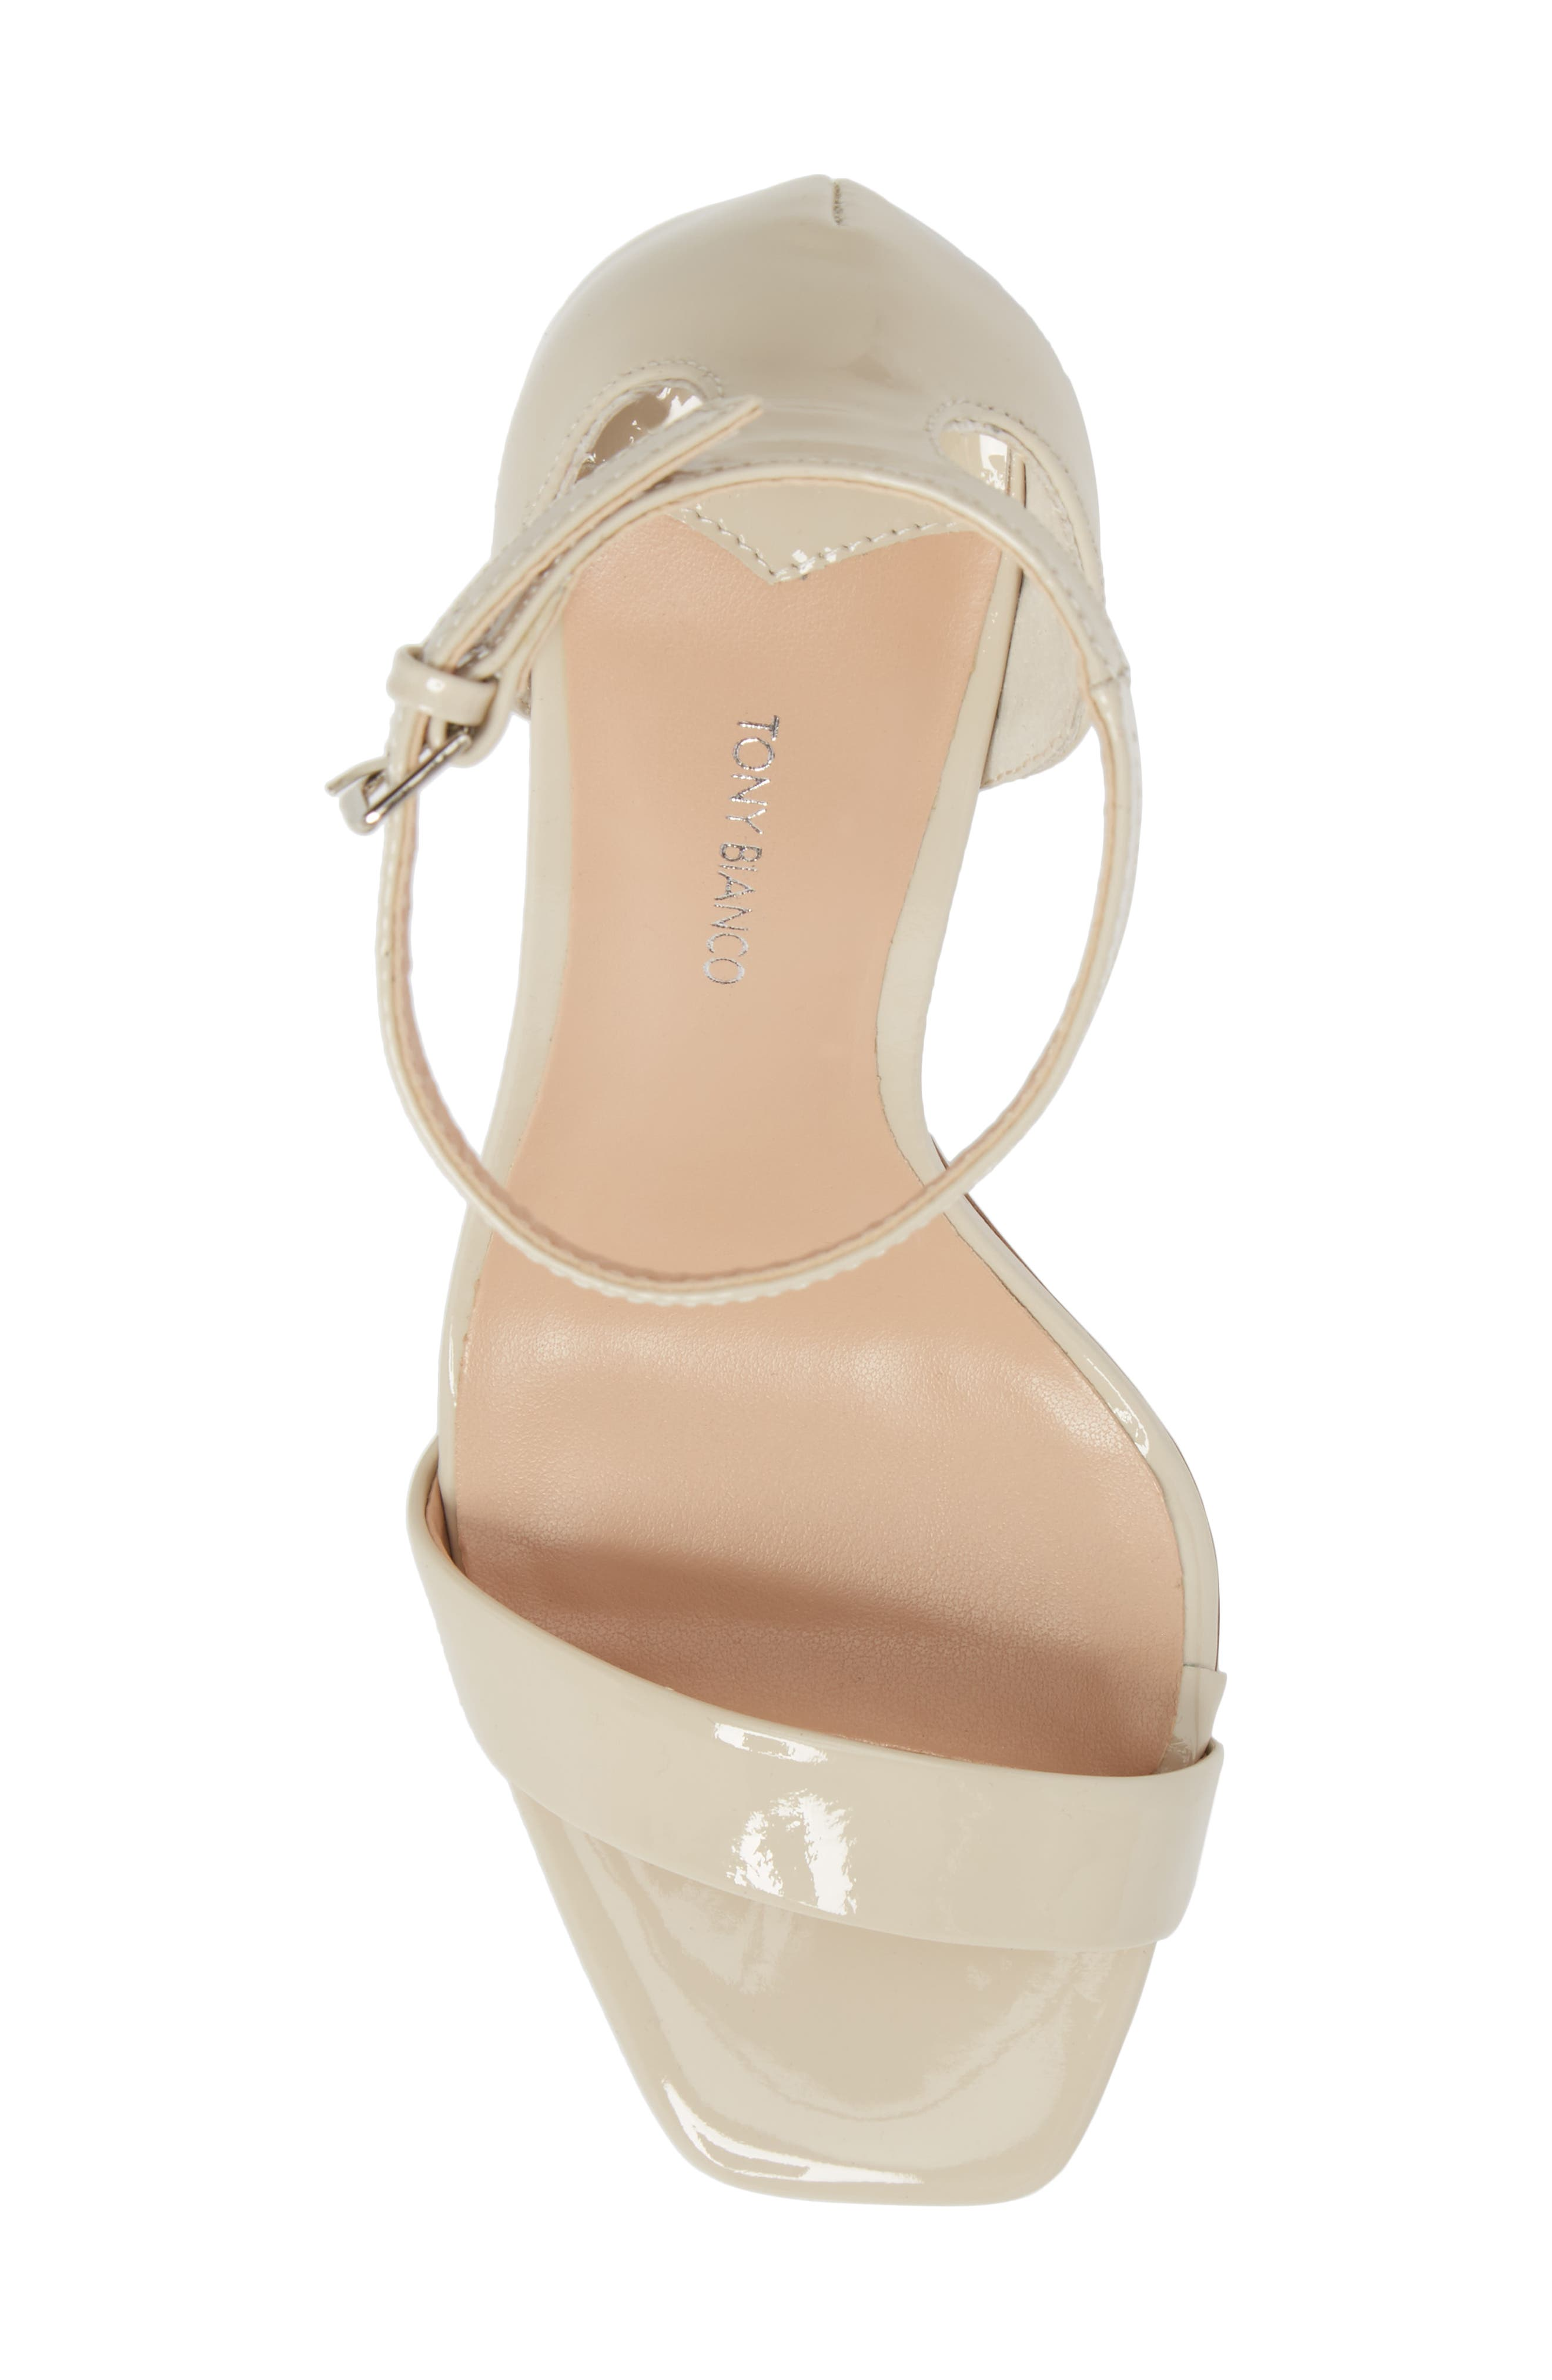 Sacha Ankle Strap Sandal,                             Alternate thumbnail 5, color,                             Oyster Patent Leather